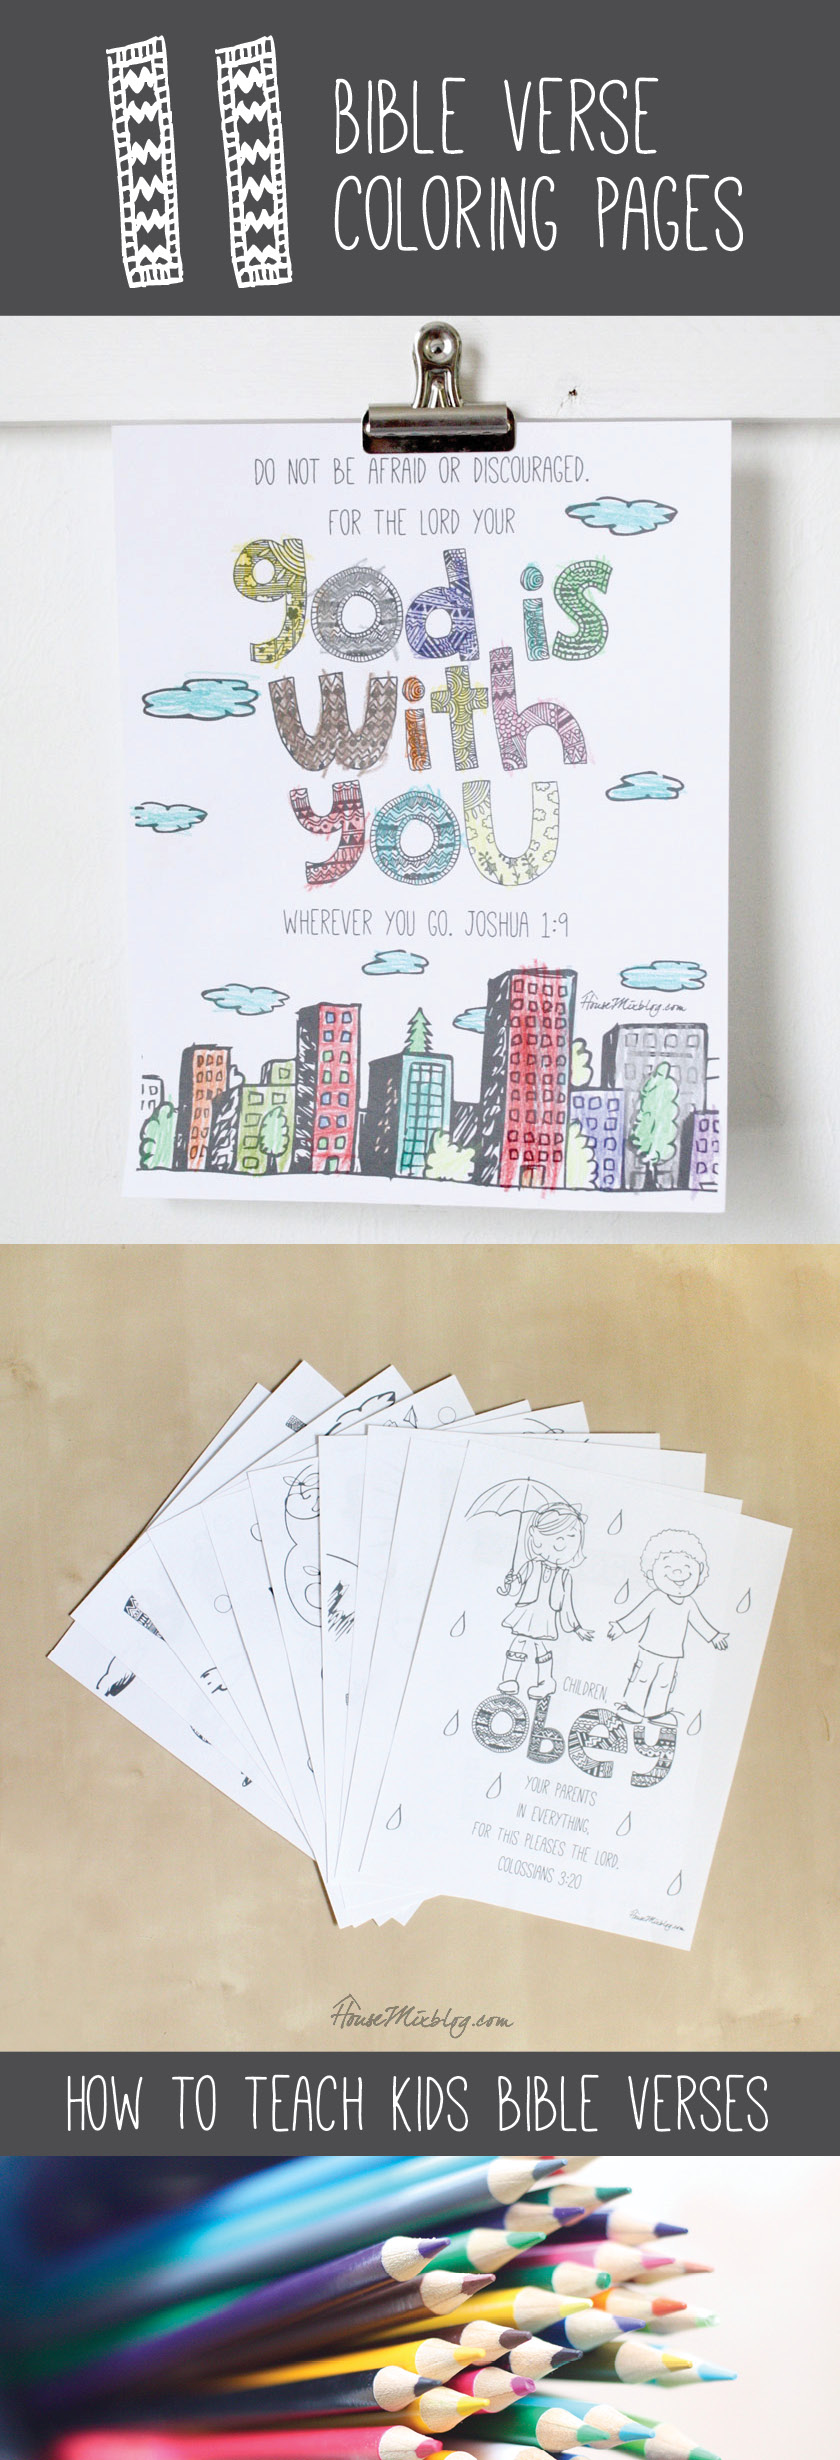 How to teach kids to memorize scripture with these coloring pages.